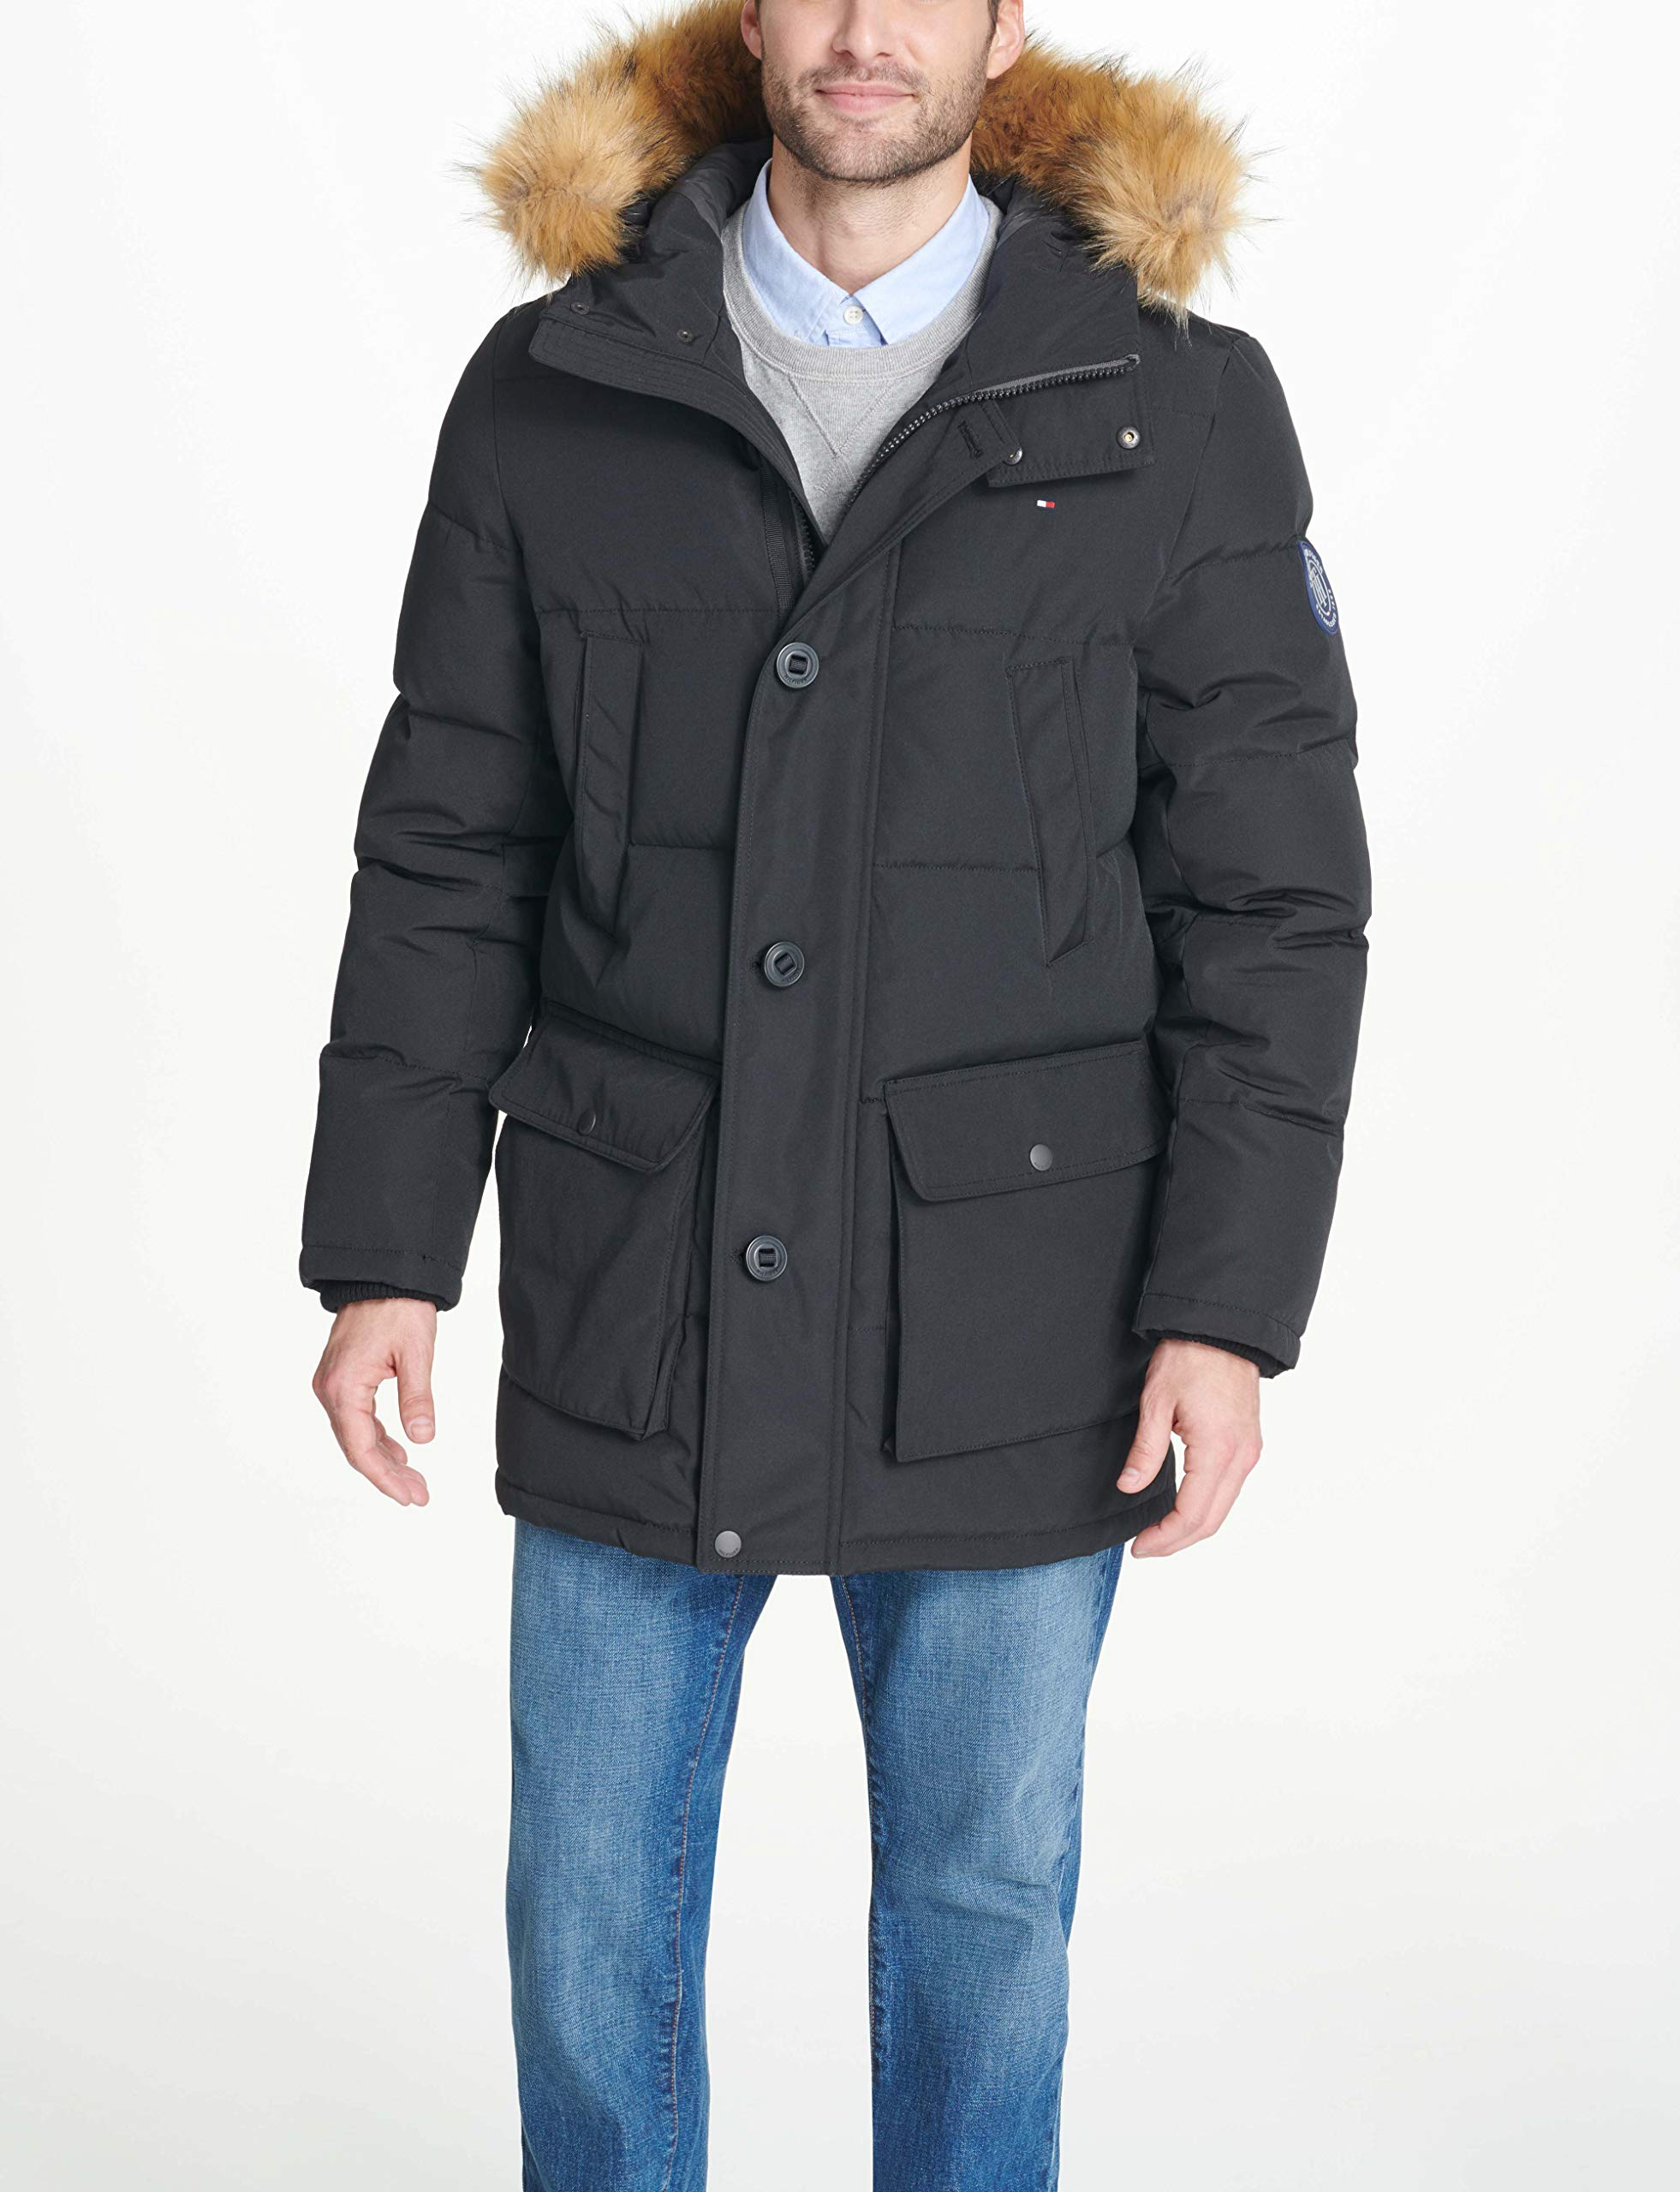 Tommy Hilfiger Men's Arctic Cloth Full Length Quilted Snorkel with Removable Faux Fur Trimmed Hood and Ultra Loft Isulation, Black, L by Tommy Hilfiger